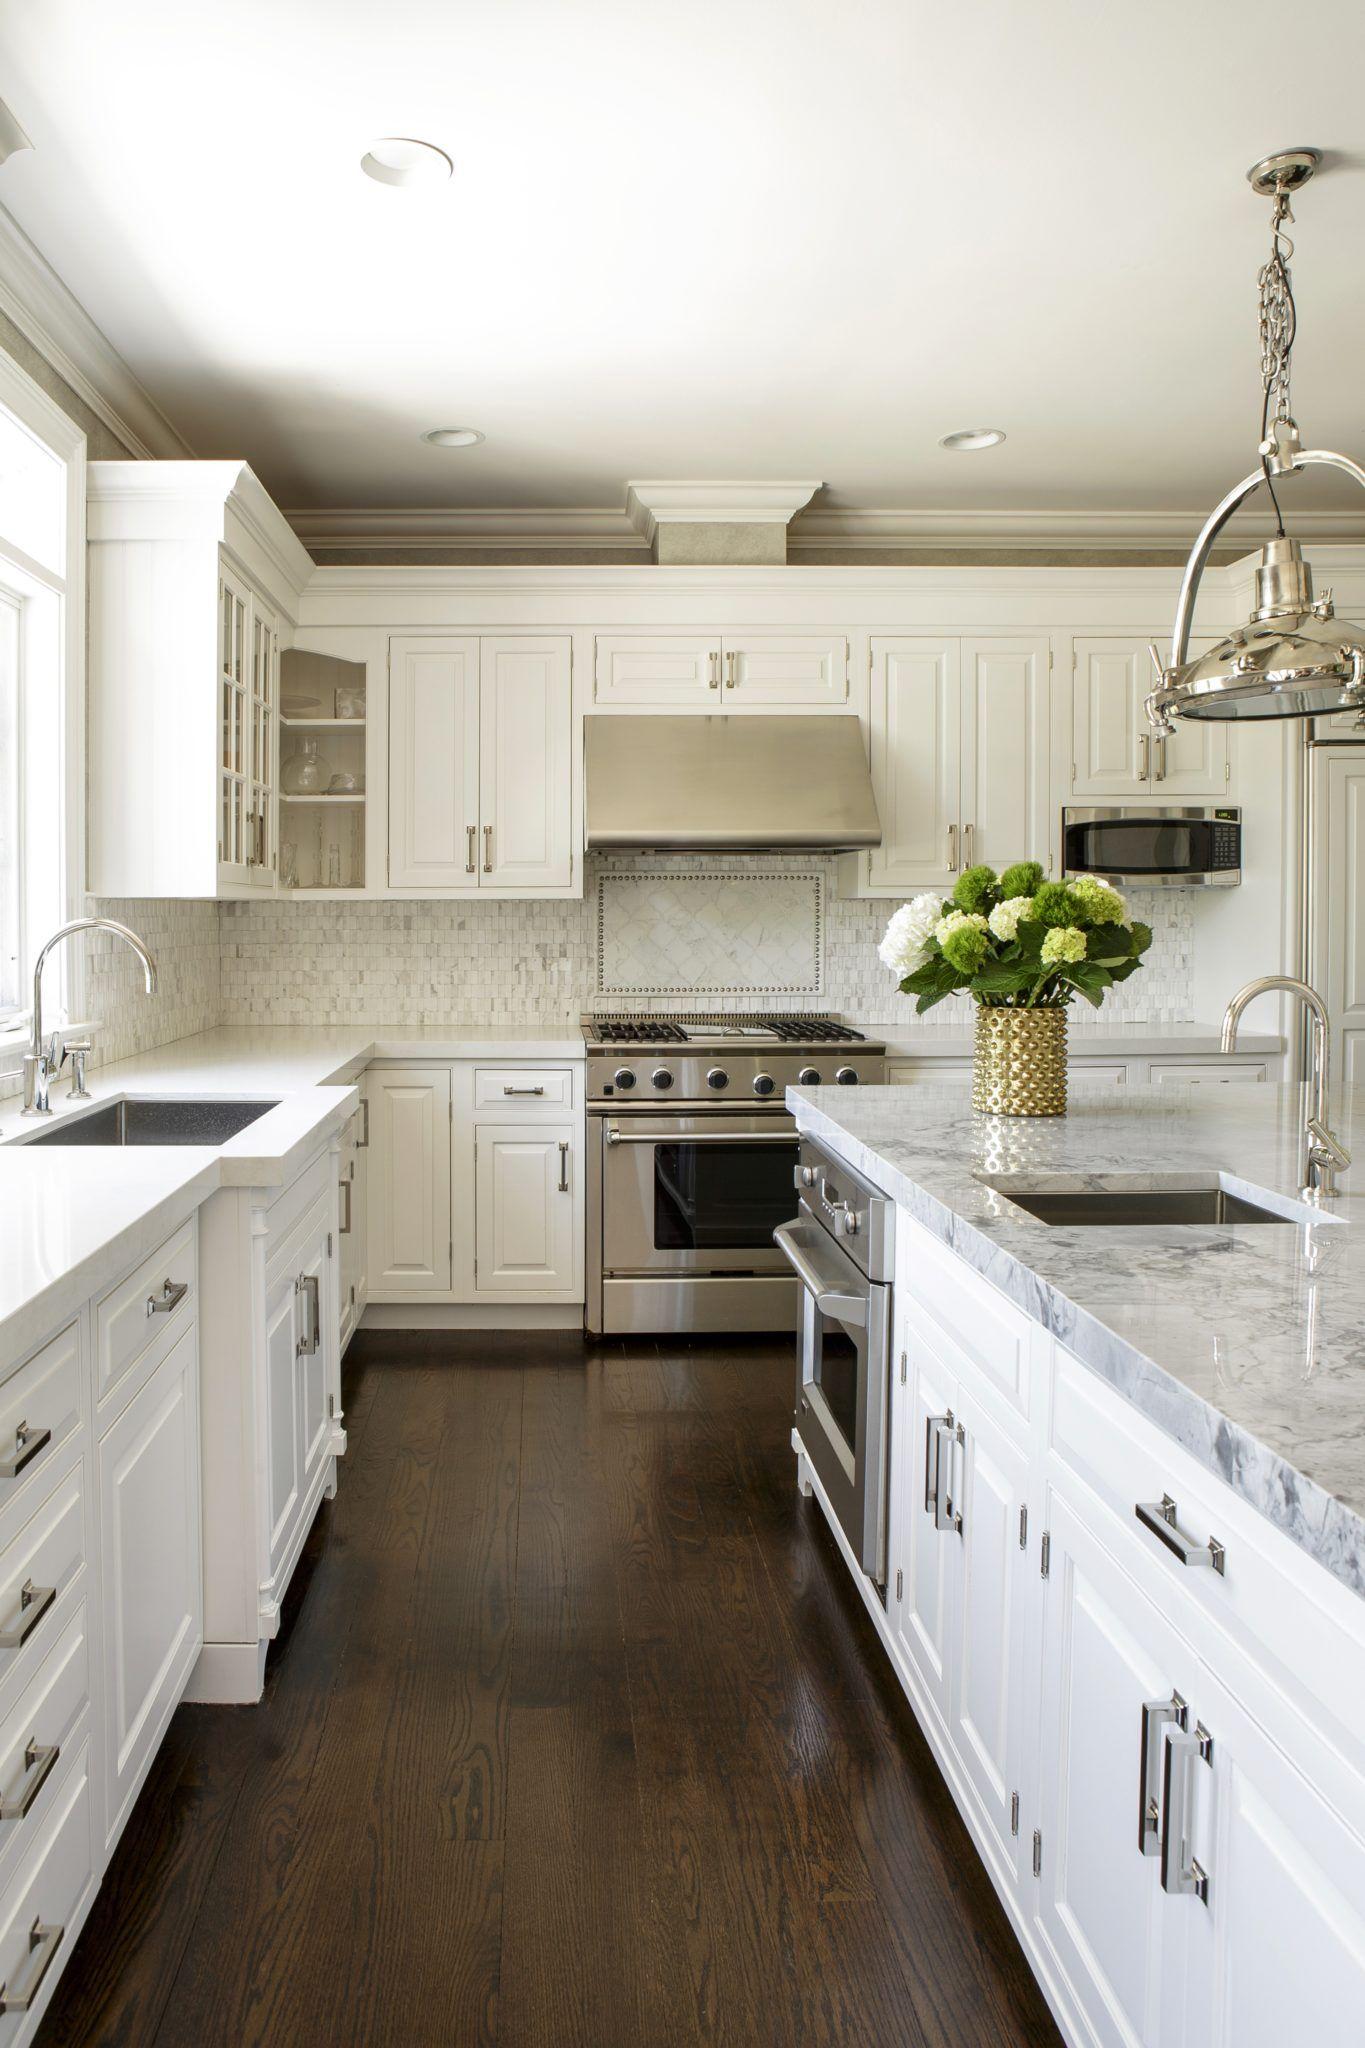 35 Kitchens With Marble Islands Chairish Blog White Modern Kitchen White Kitchen Remodeling Modern White Kitchen Cabinets Kitchen with dark floors and white cabinets